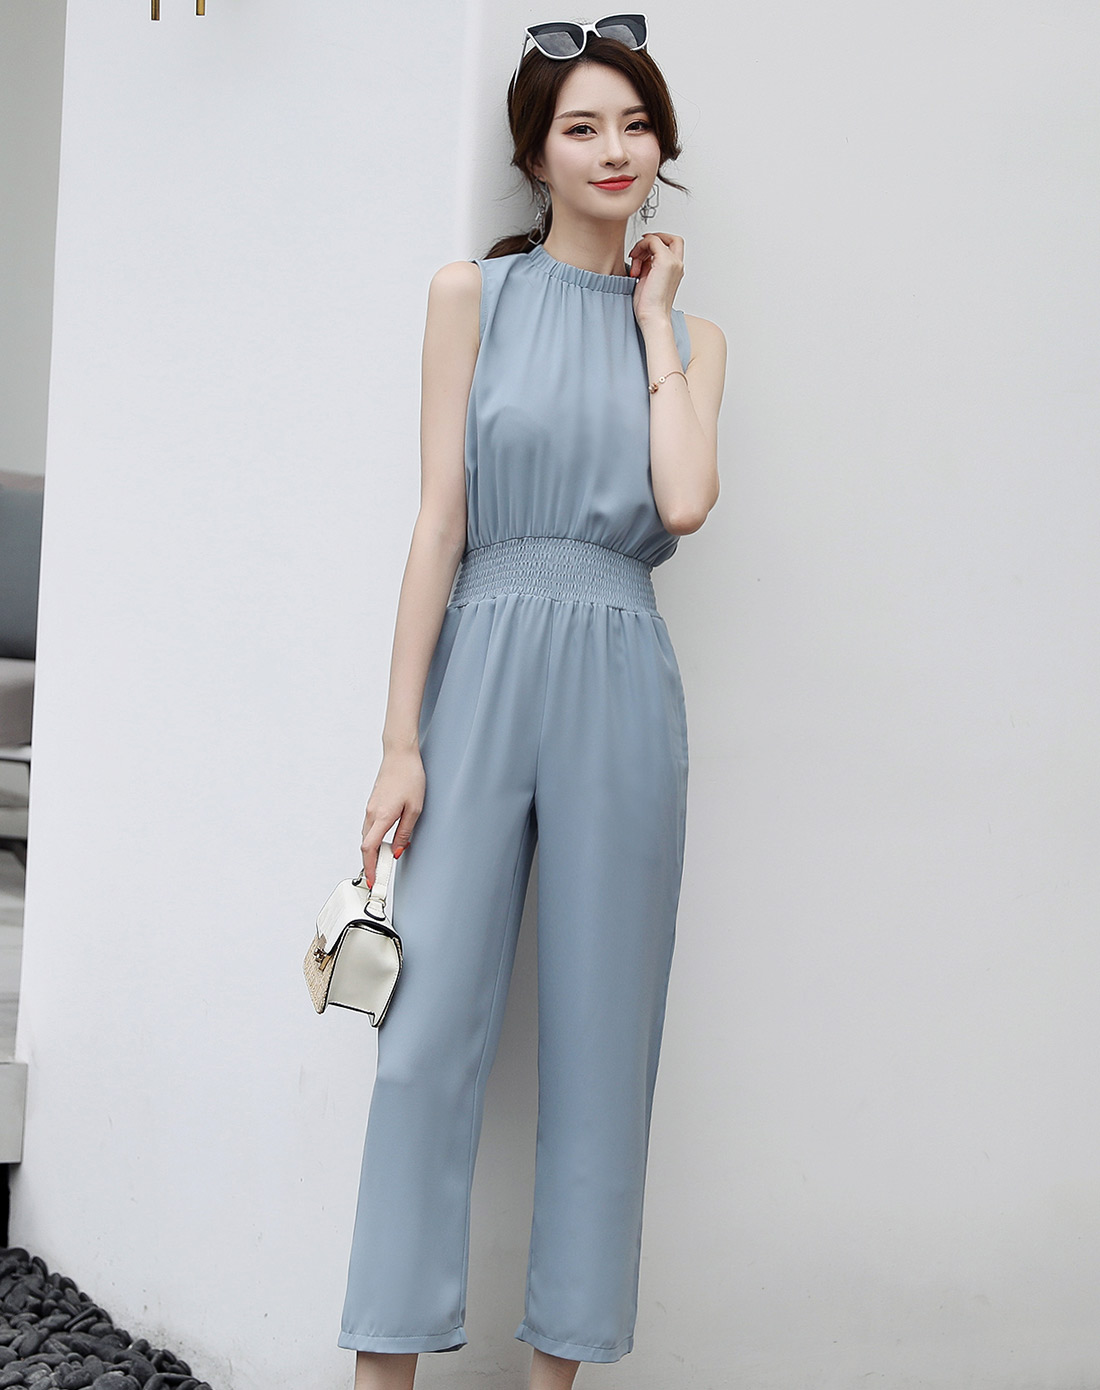 bcb5fa6fff77 Wide Leg Dressy Pant Suits - raveitsafe